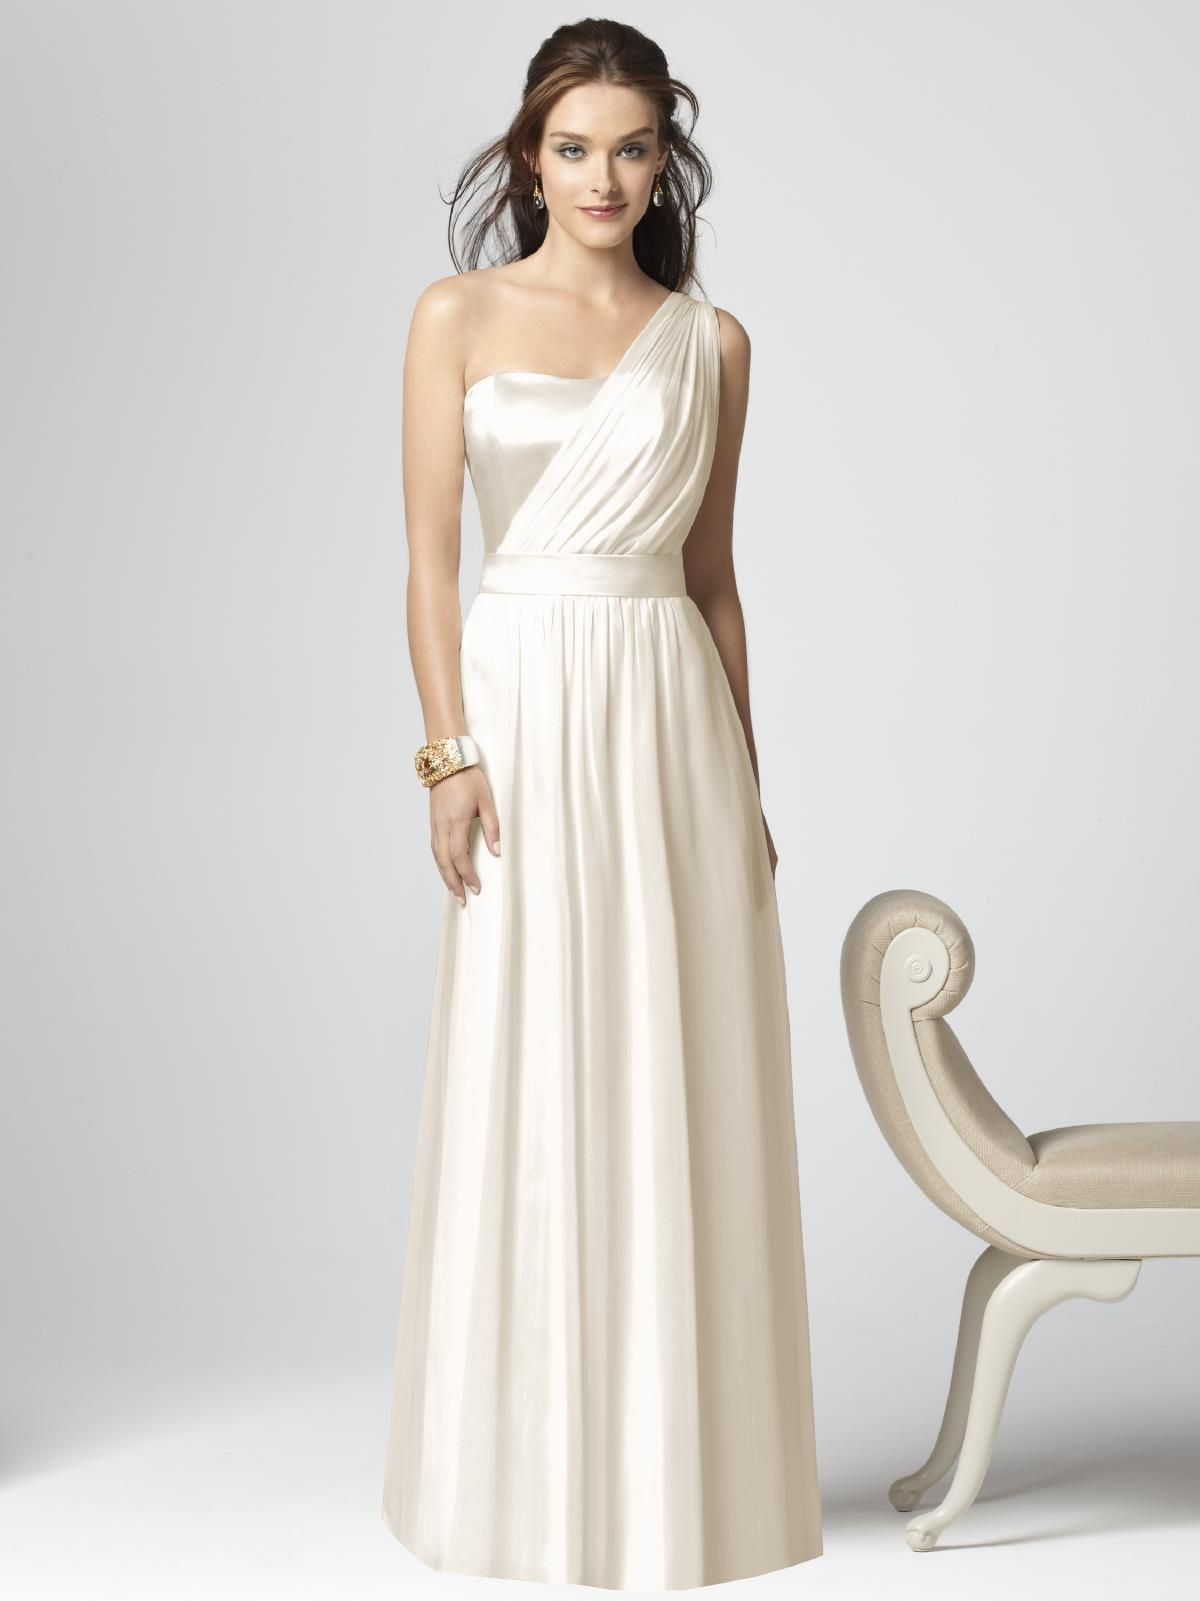 Love this greek inspired gown | Fashion | Pinterest